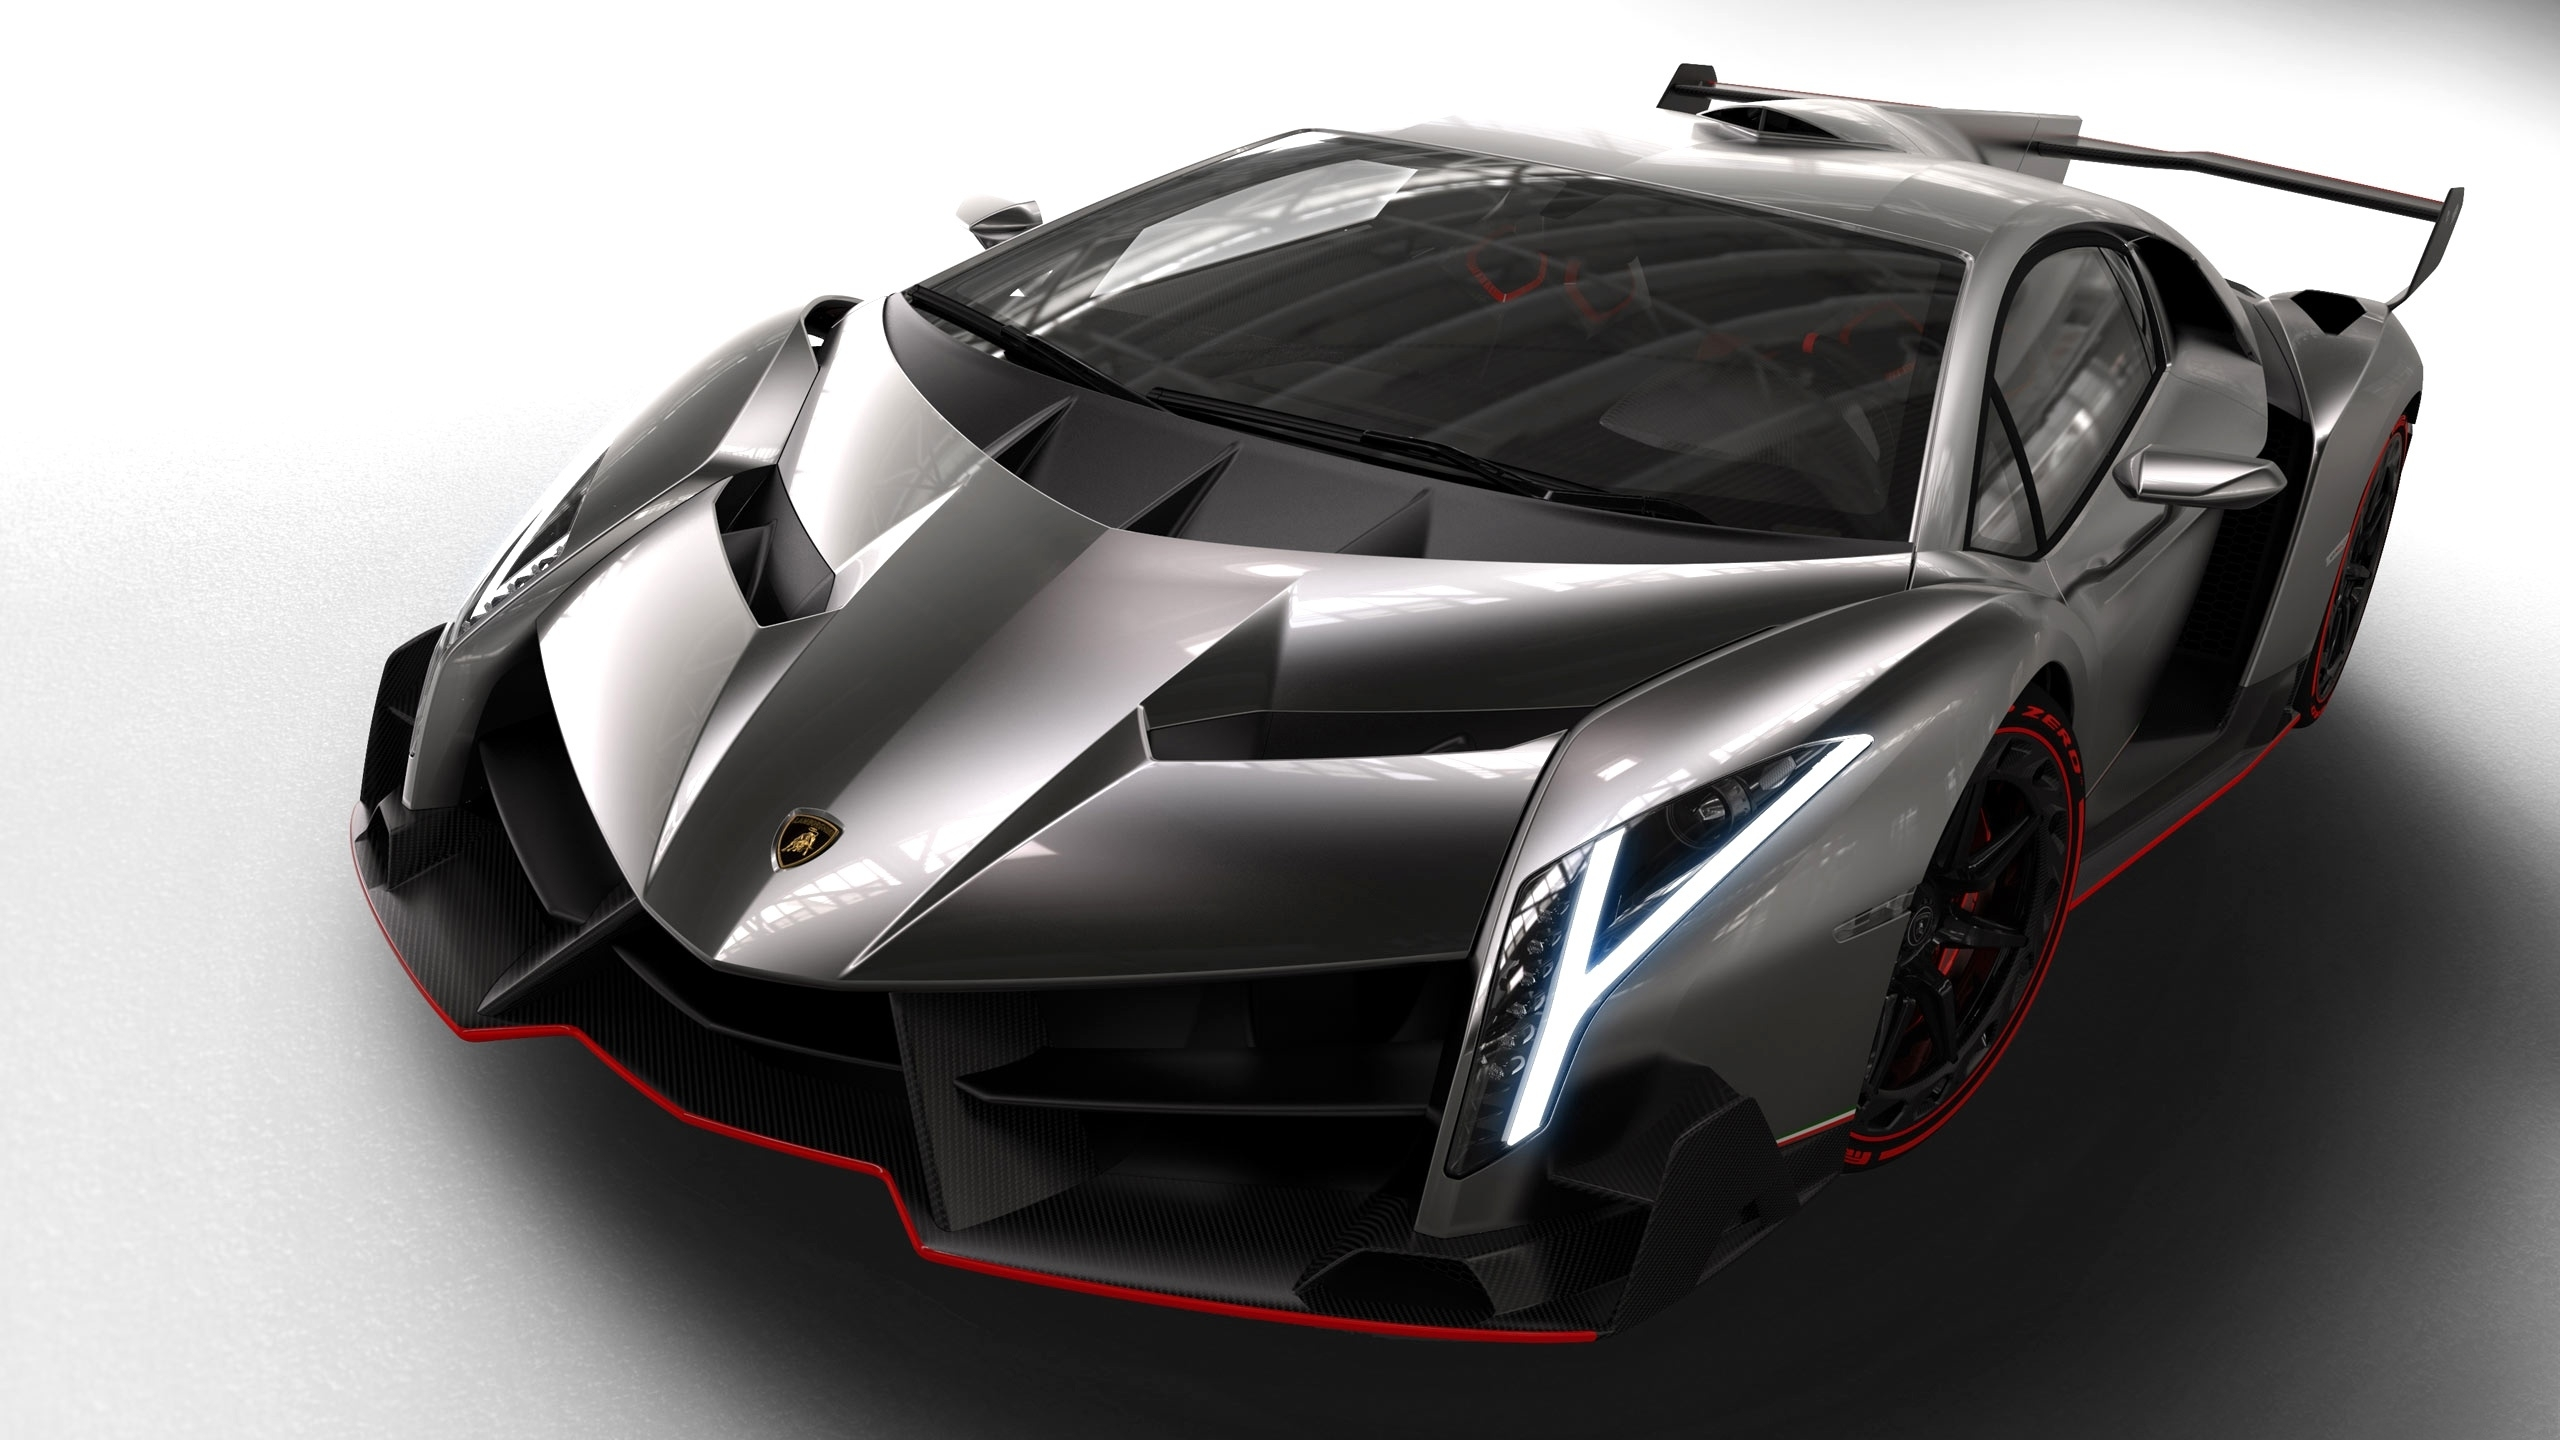 16 lamborghini veneno hd wallpapers | background images